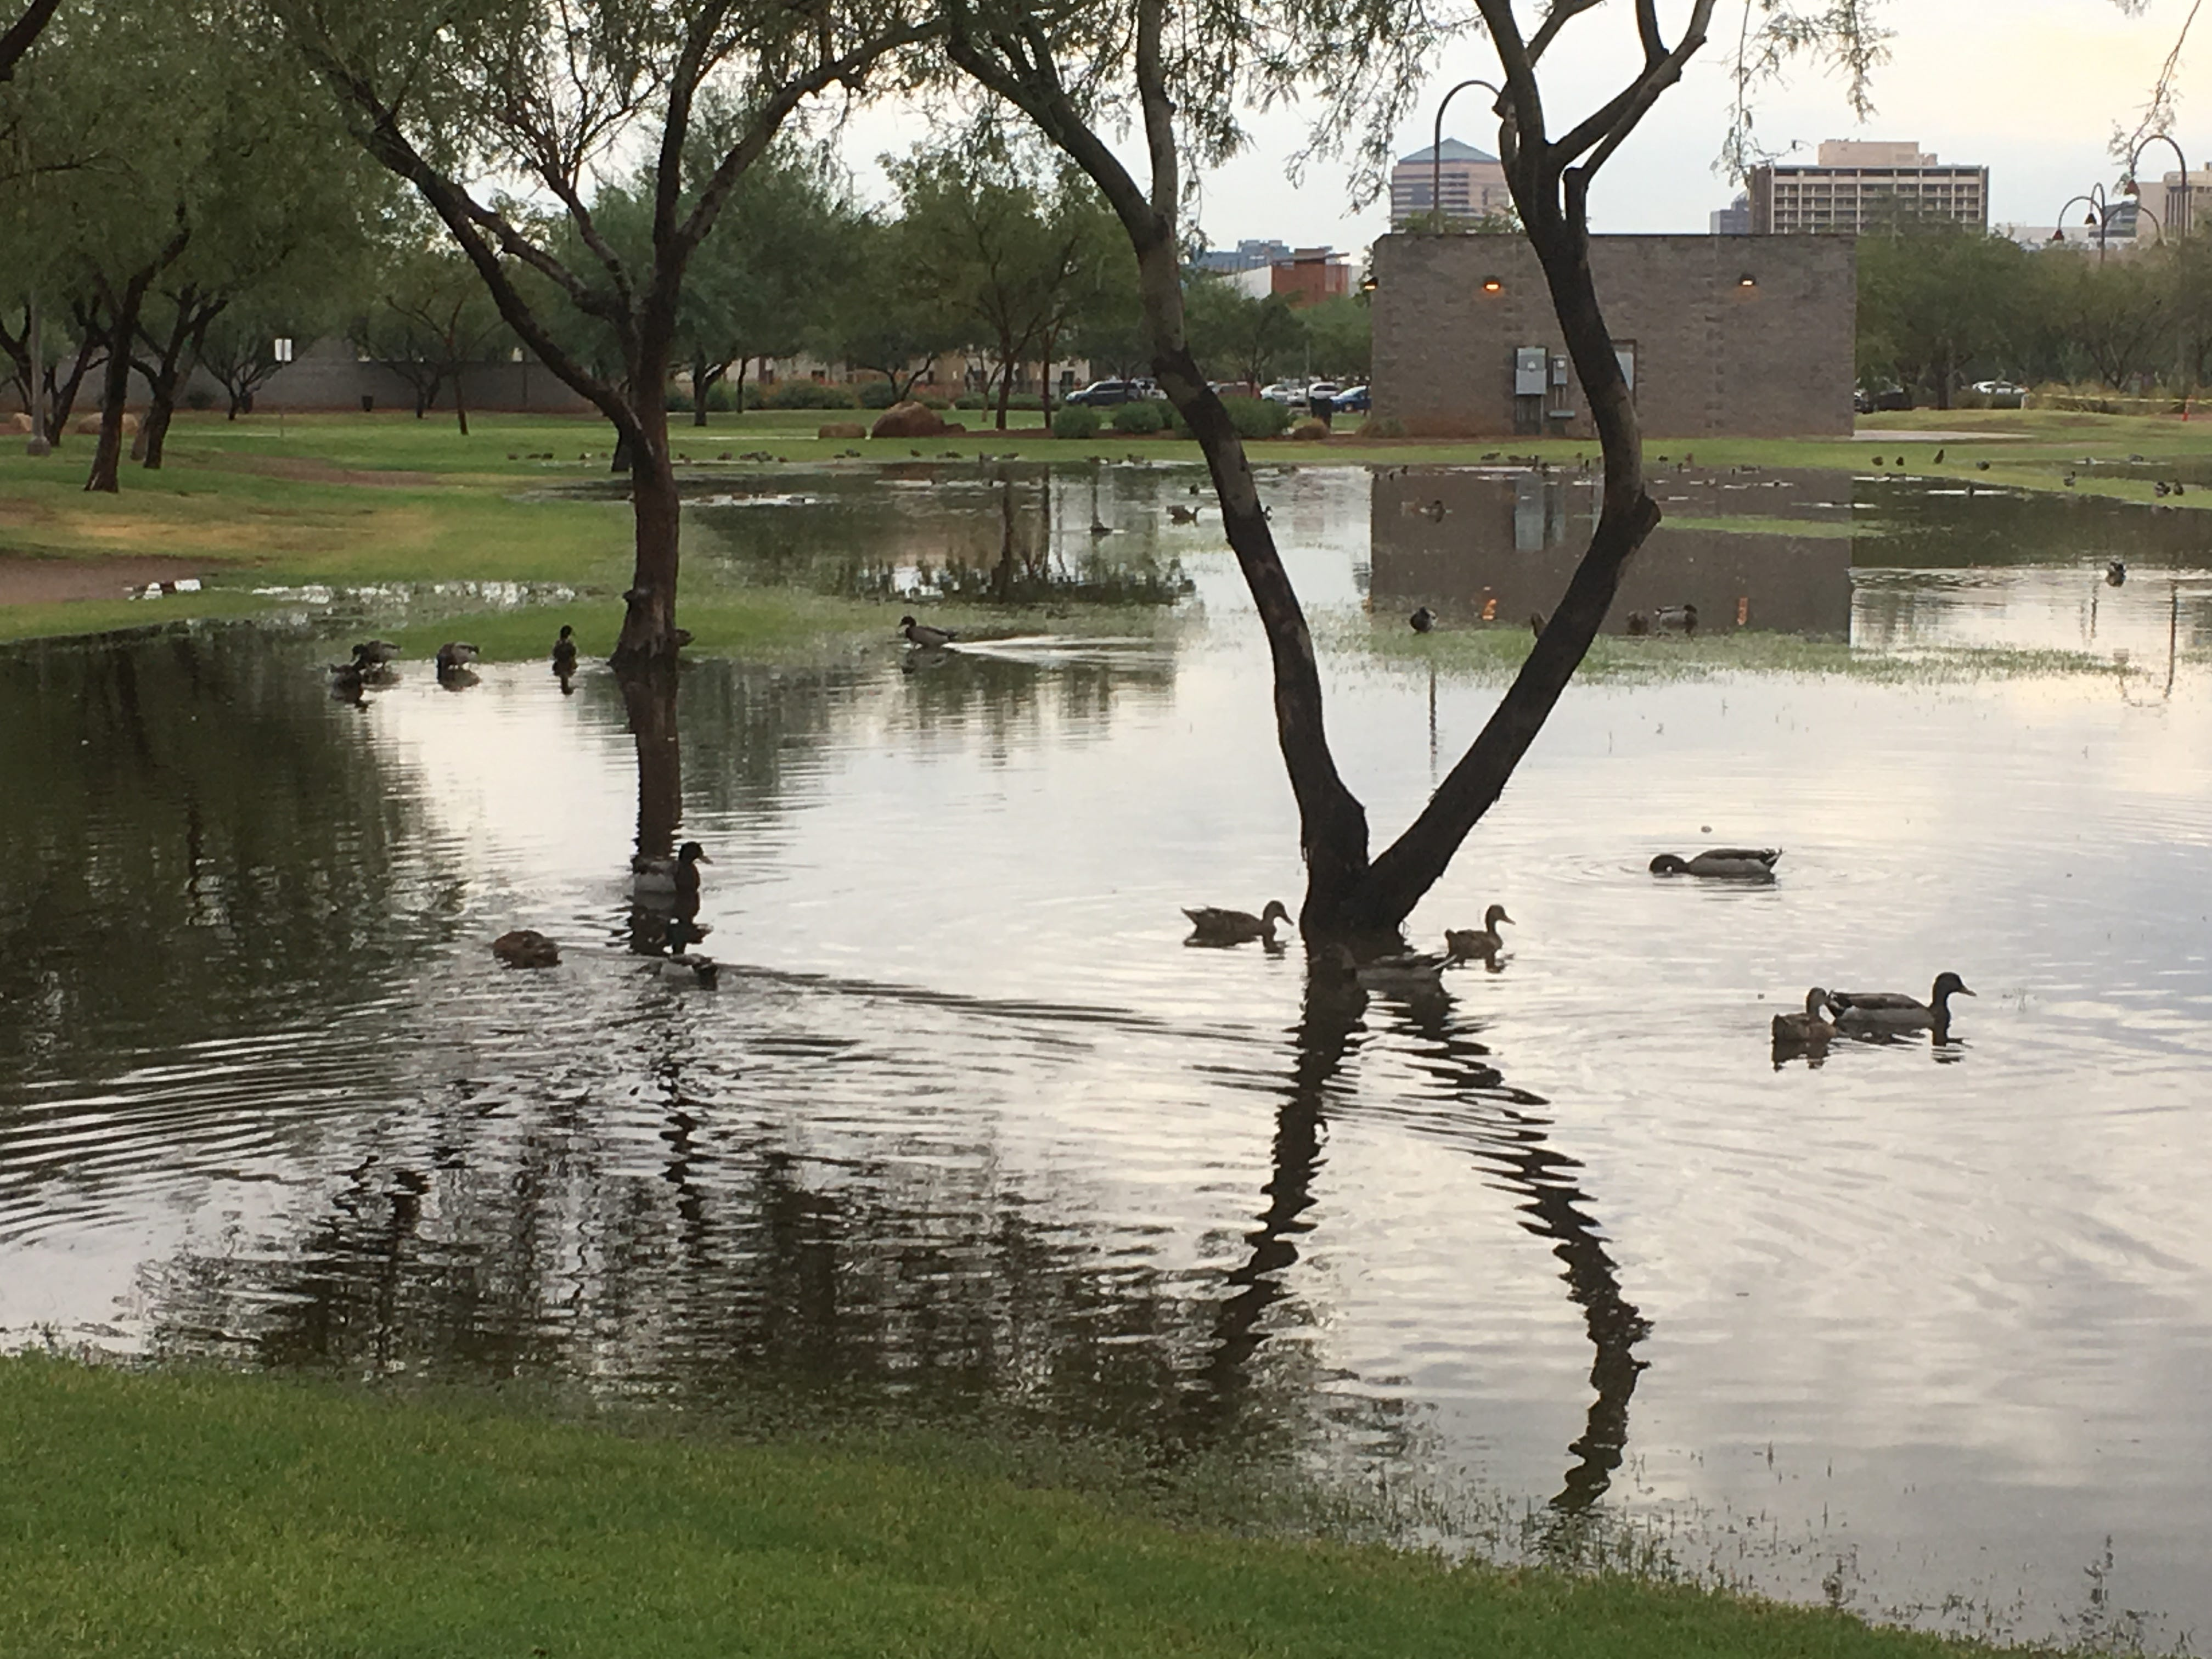 Ducks swim in puddles at Steele Indian School Park after rain hit Phoenix on Sept. 19, 2018.